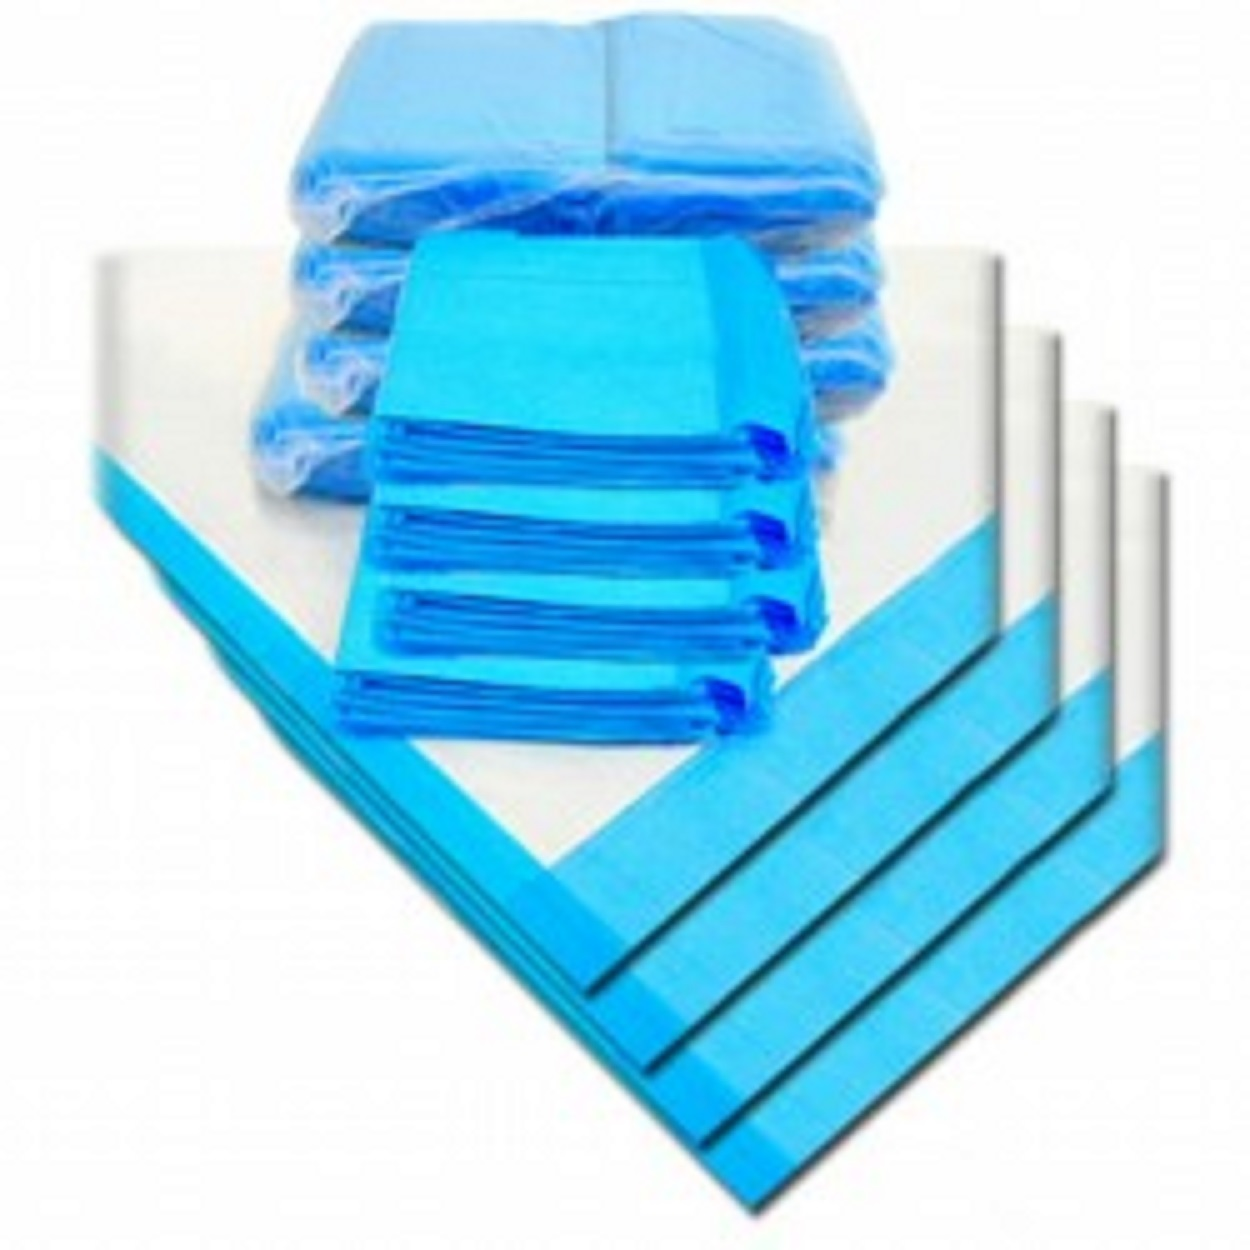 150 30x30 Dog Puppy Training Wee Wee Pee Pads Underpads Medical Adult Potty